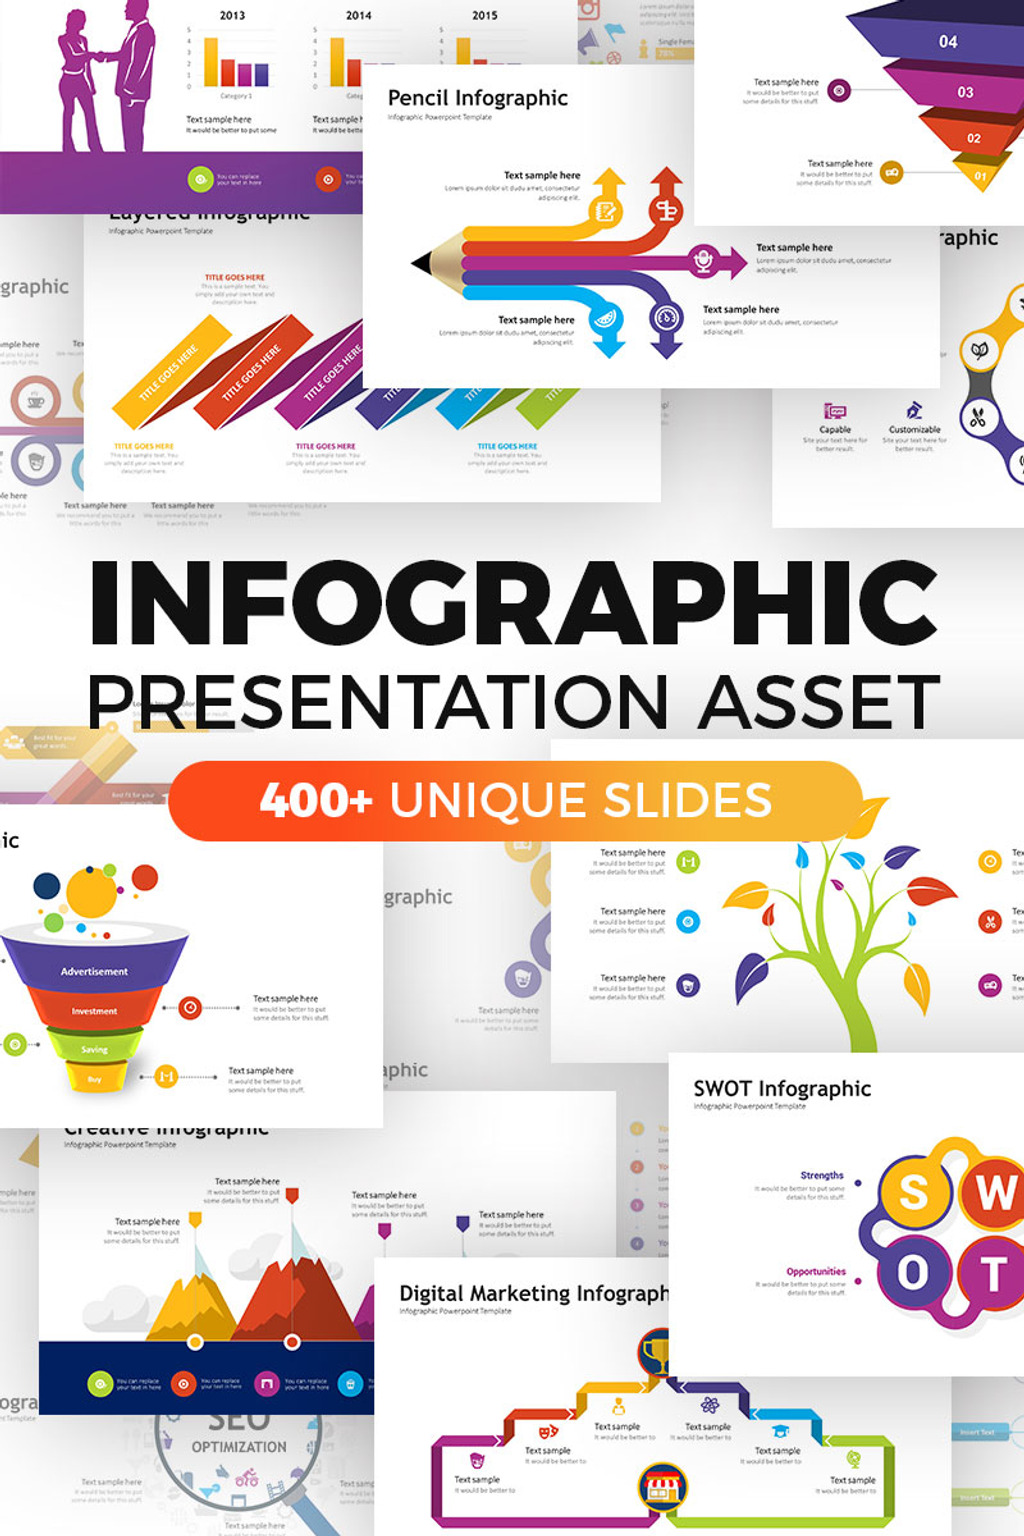 827 powerpoint templates ppt templates powerpoint themes infographic pack presentation asset powerpoint template toneelgroepblik Choice Image